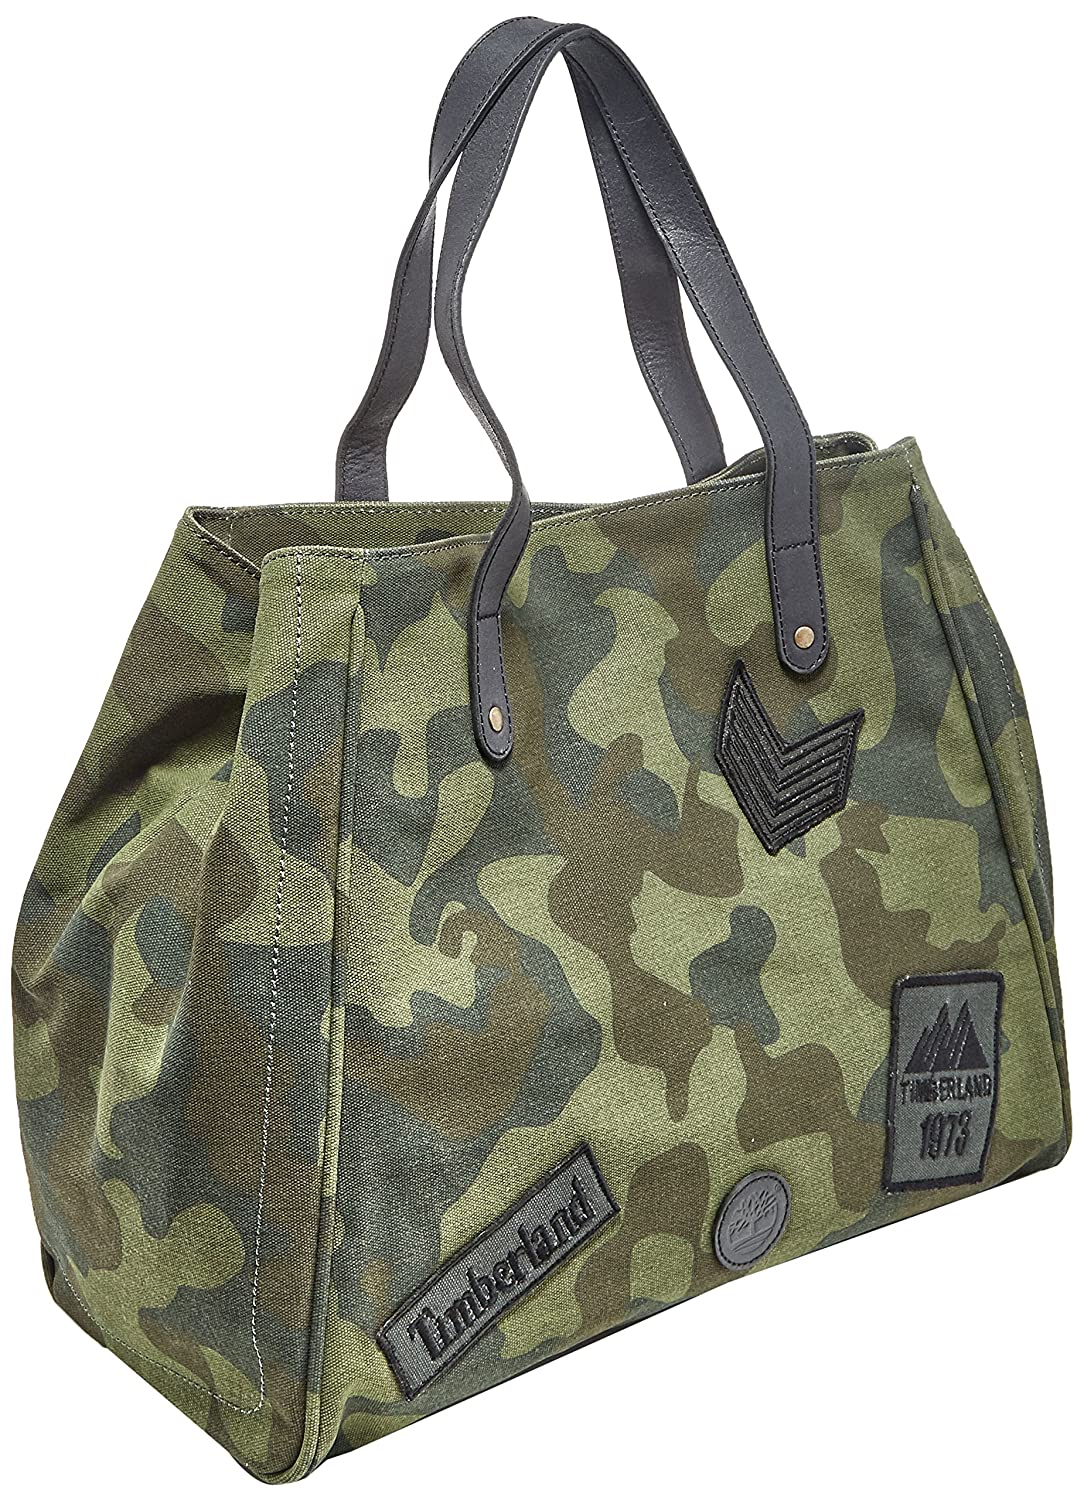 Large Shopping Bag, Unisex Adults Top-Handle Green (Green Camo), 20x33x40 cm (W x H L) Timberland